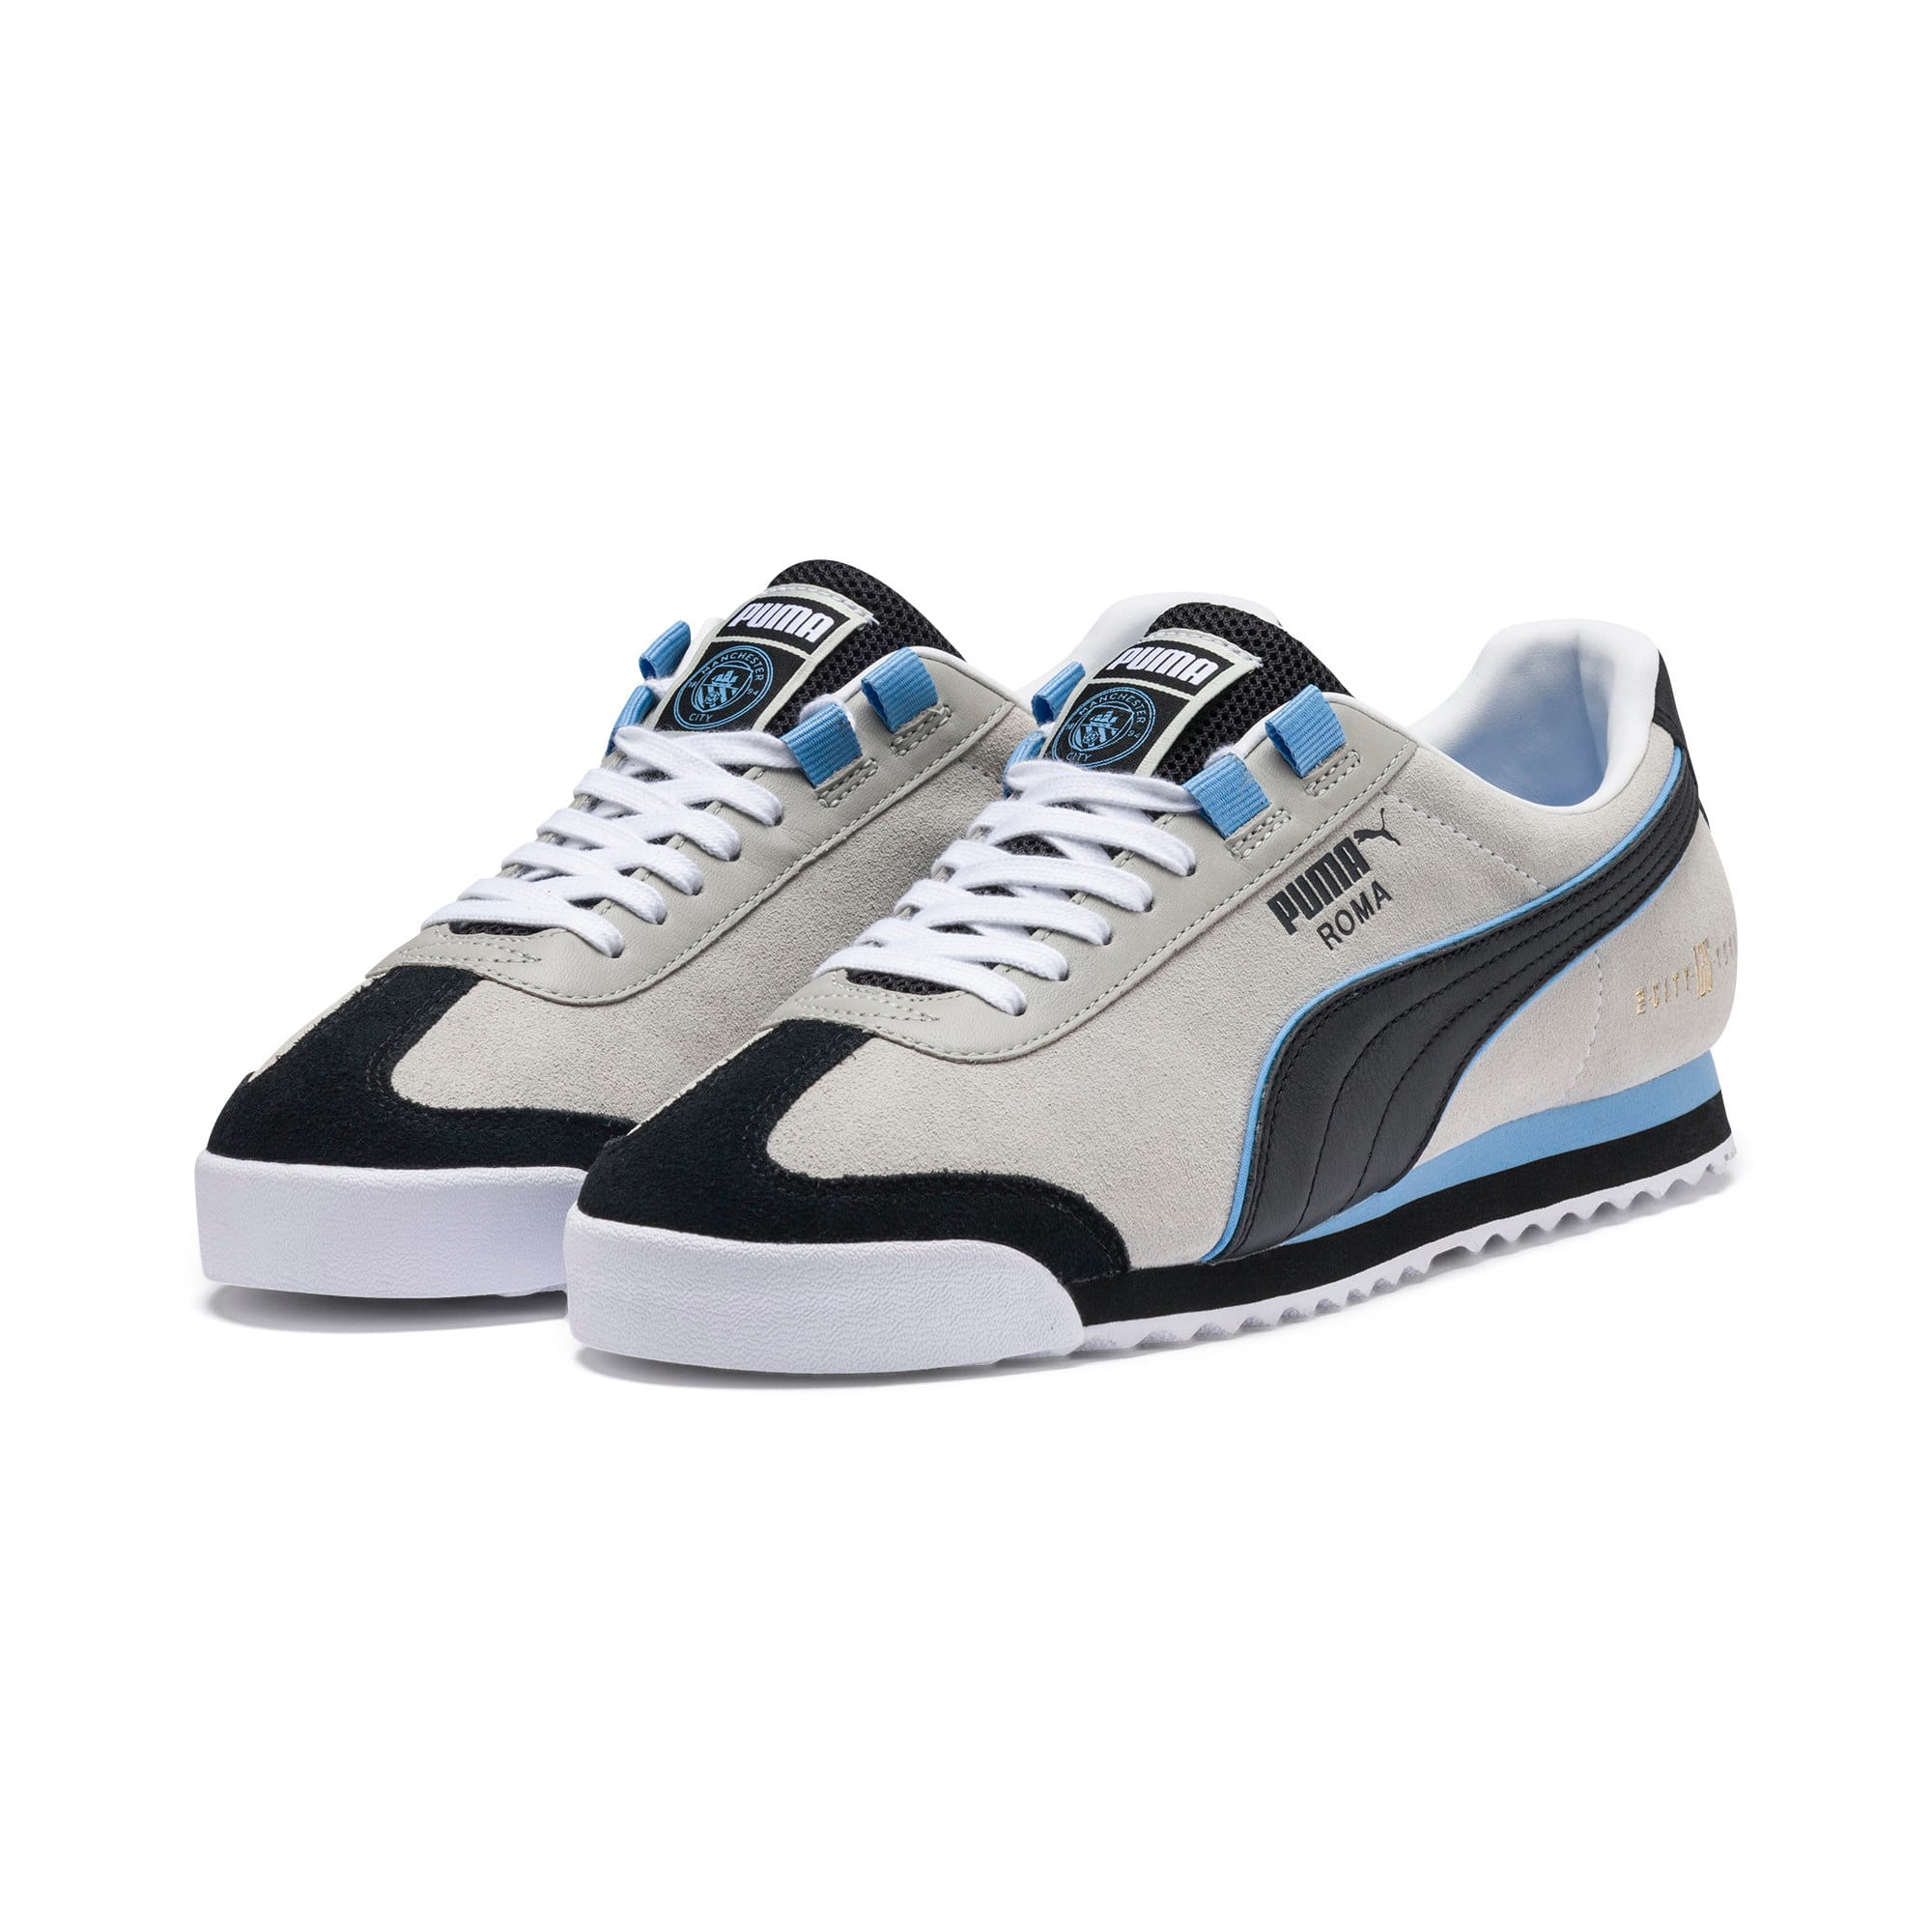 Thumbnail 2 of Roma x Manchester City sportschoenen, Gray Violet-Team Light Blue, medium